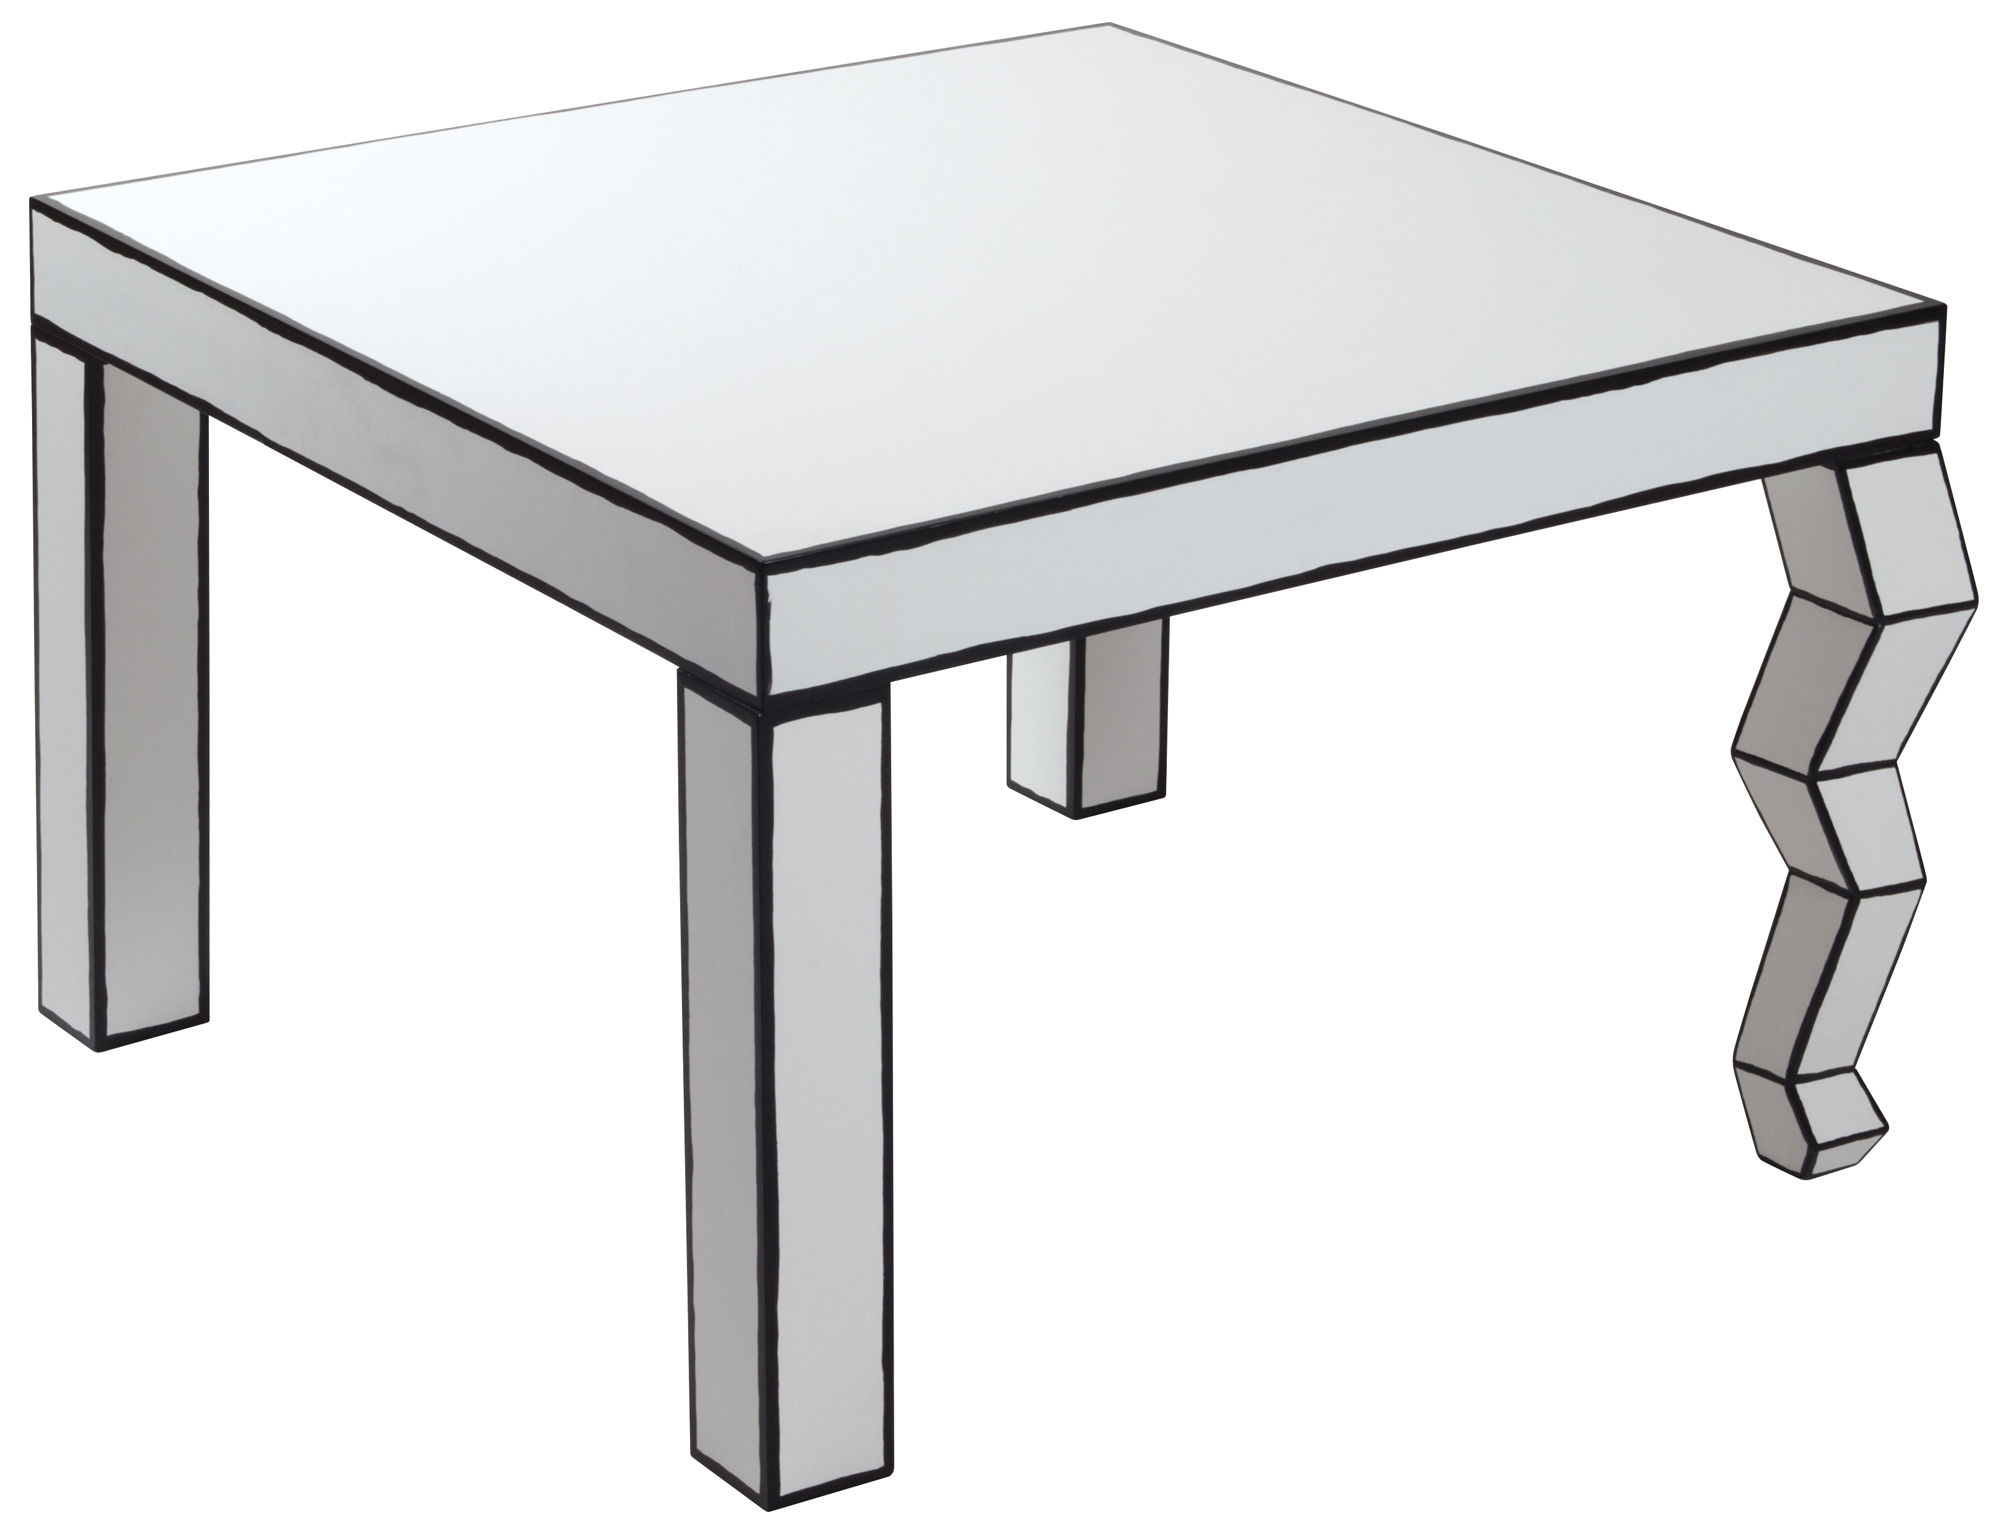 Table Cartoon Black And White.